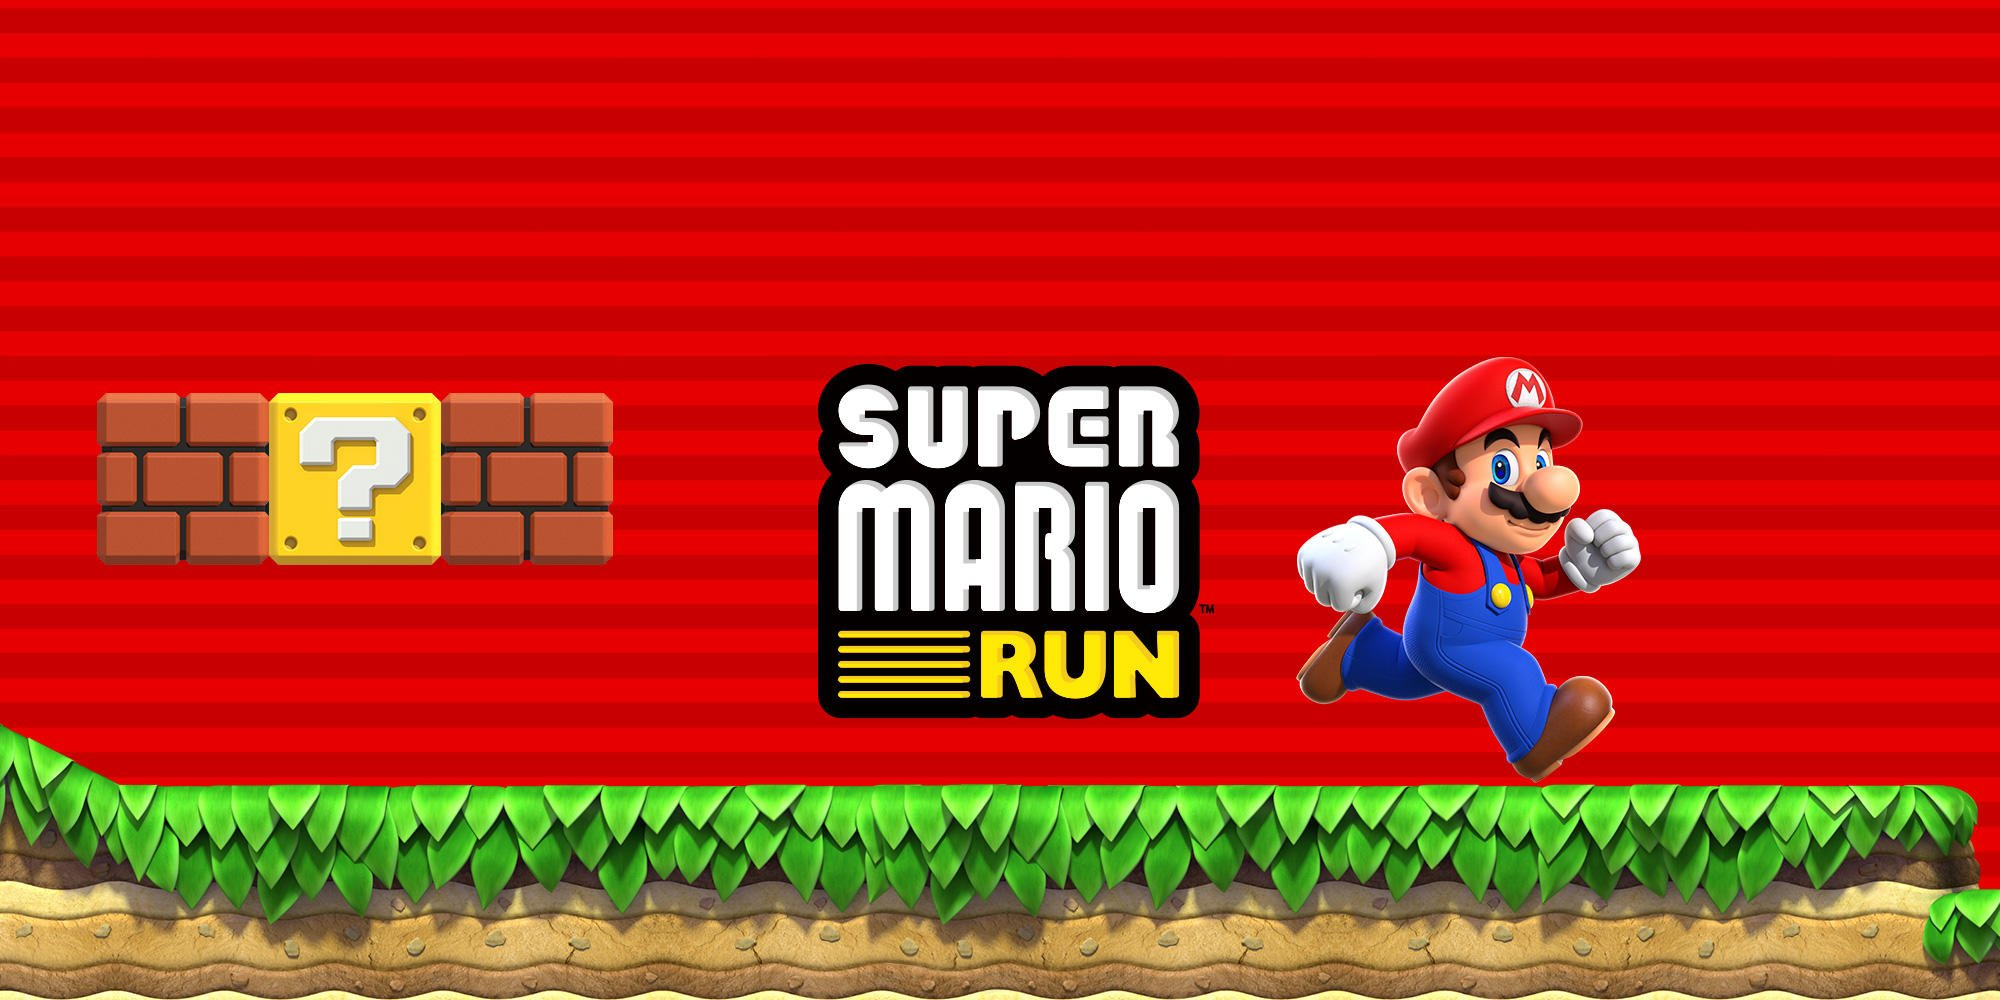 super mario run coming to iphone ios later this year